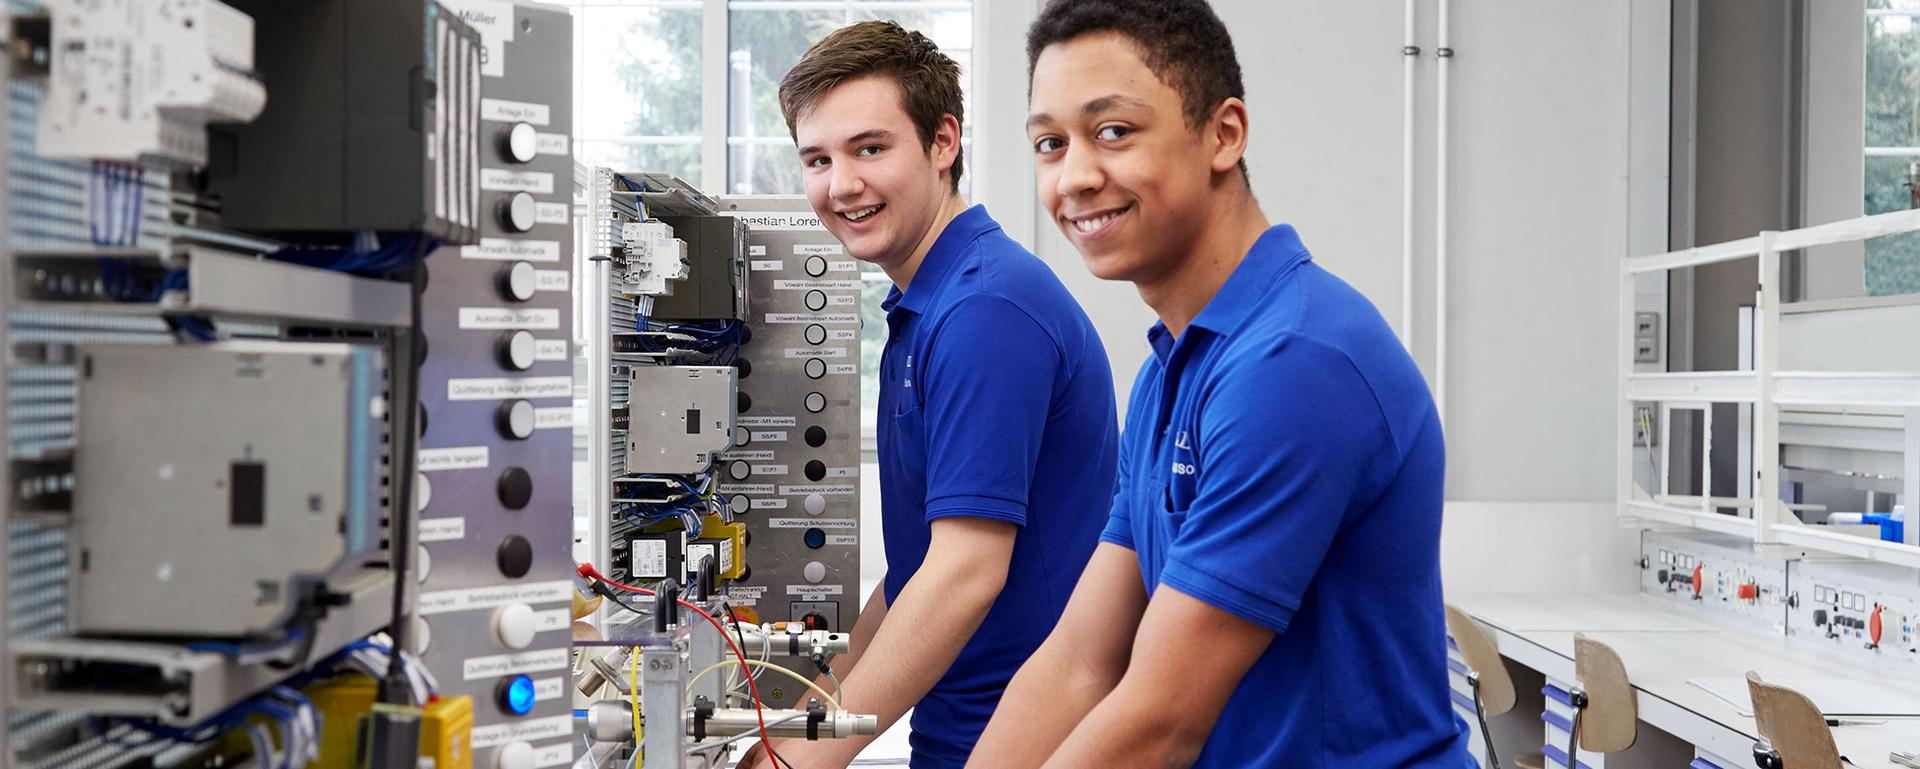 Training at HELLER: Electronics Engineer for Automation Engineering